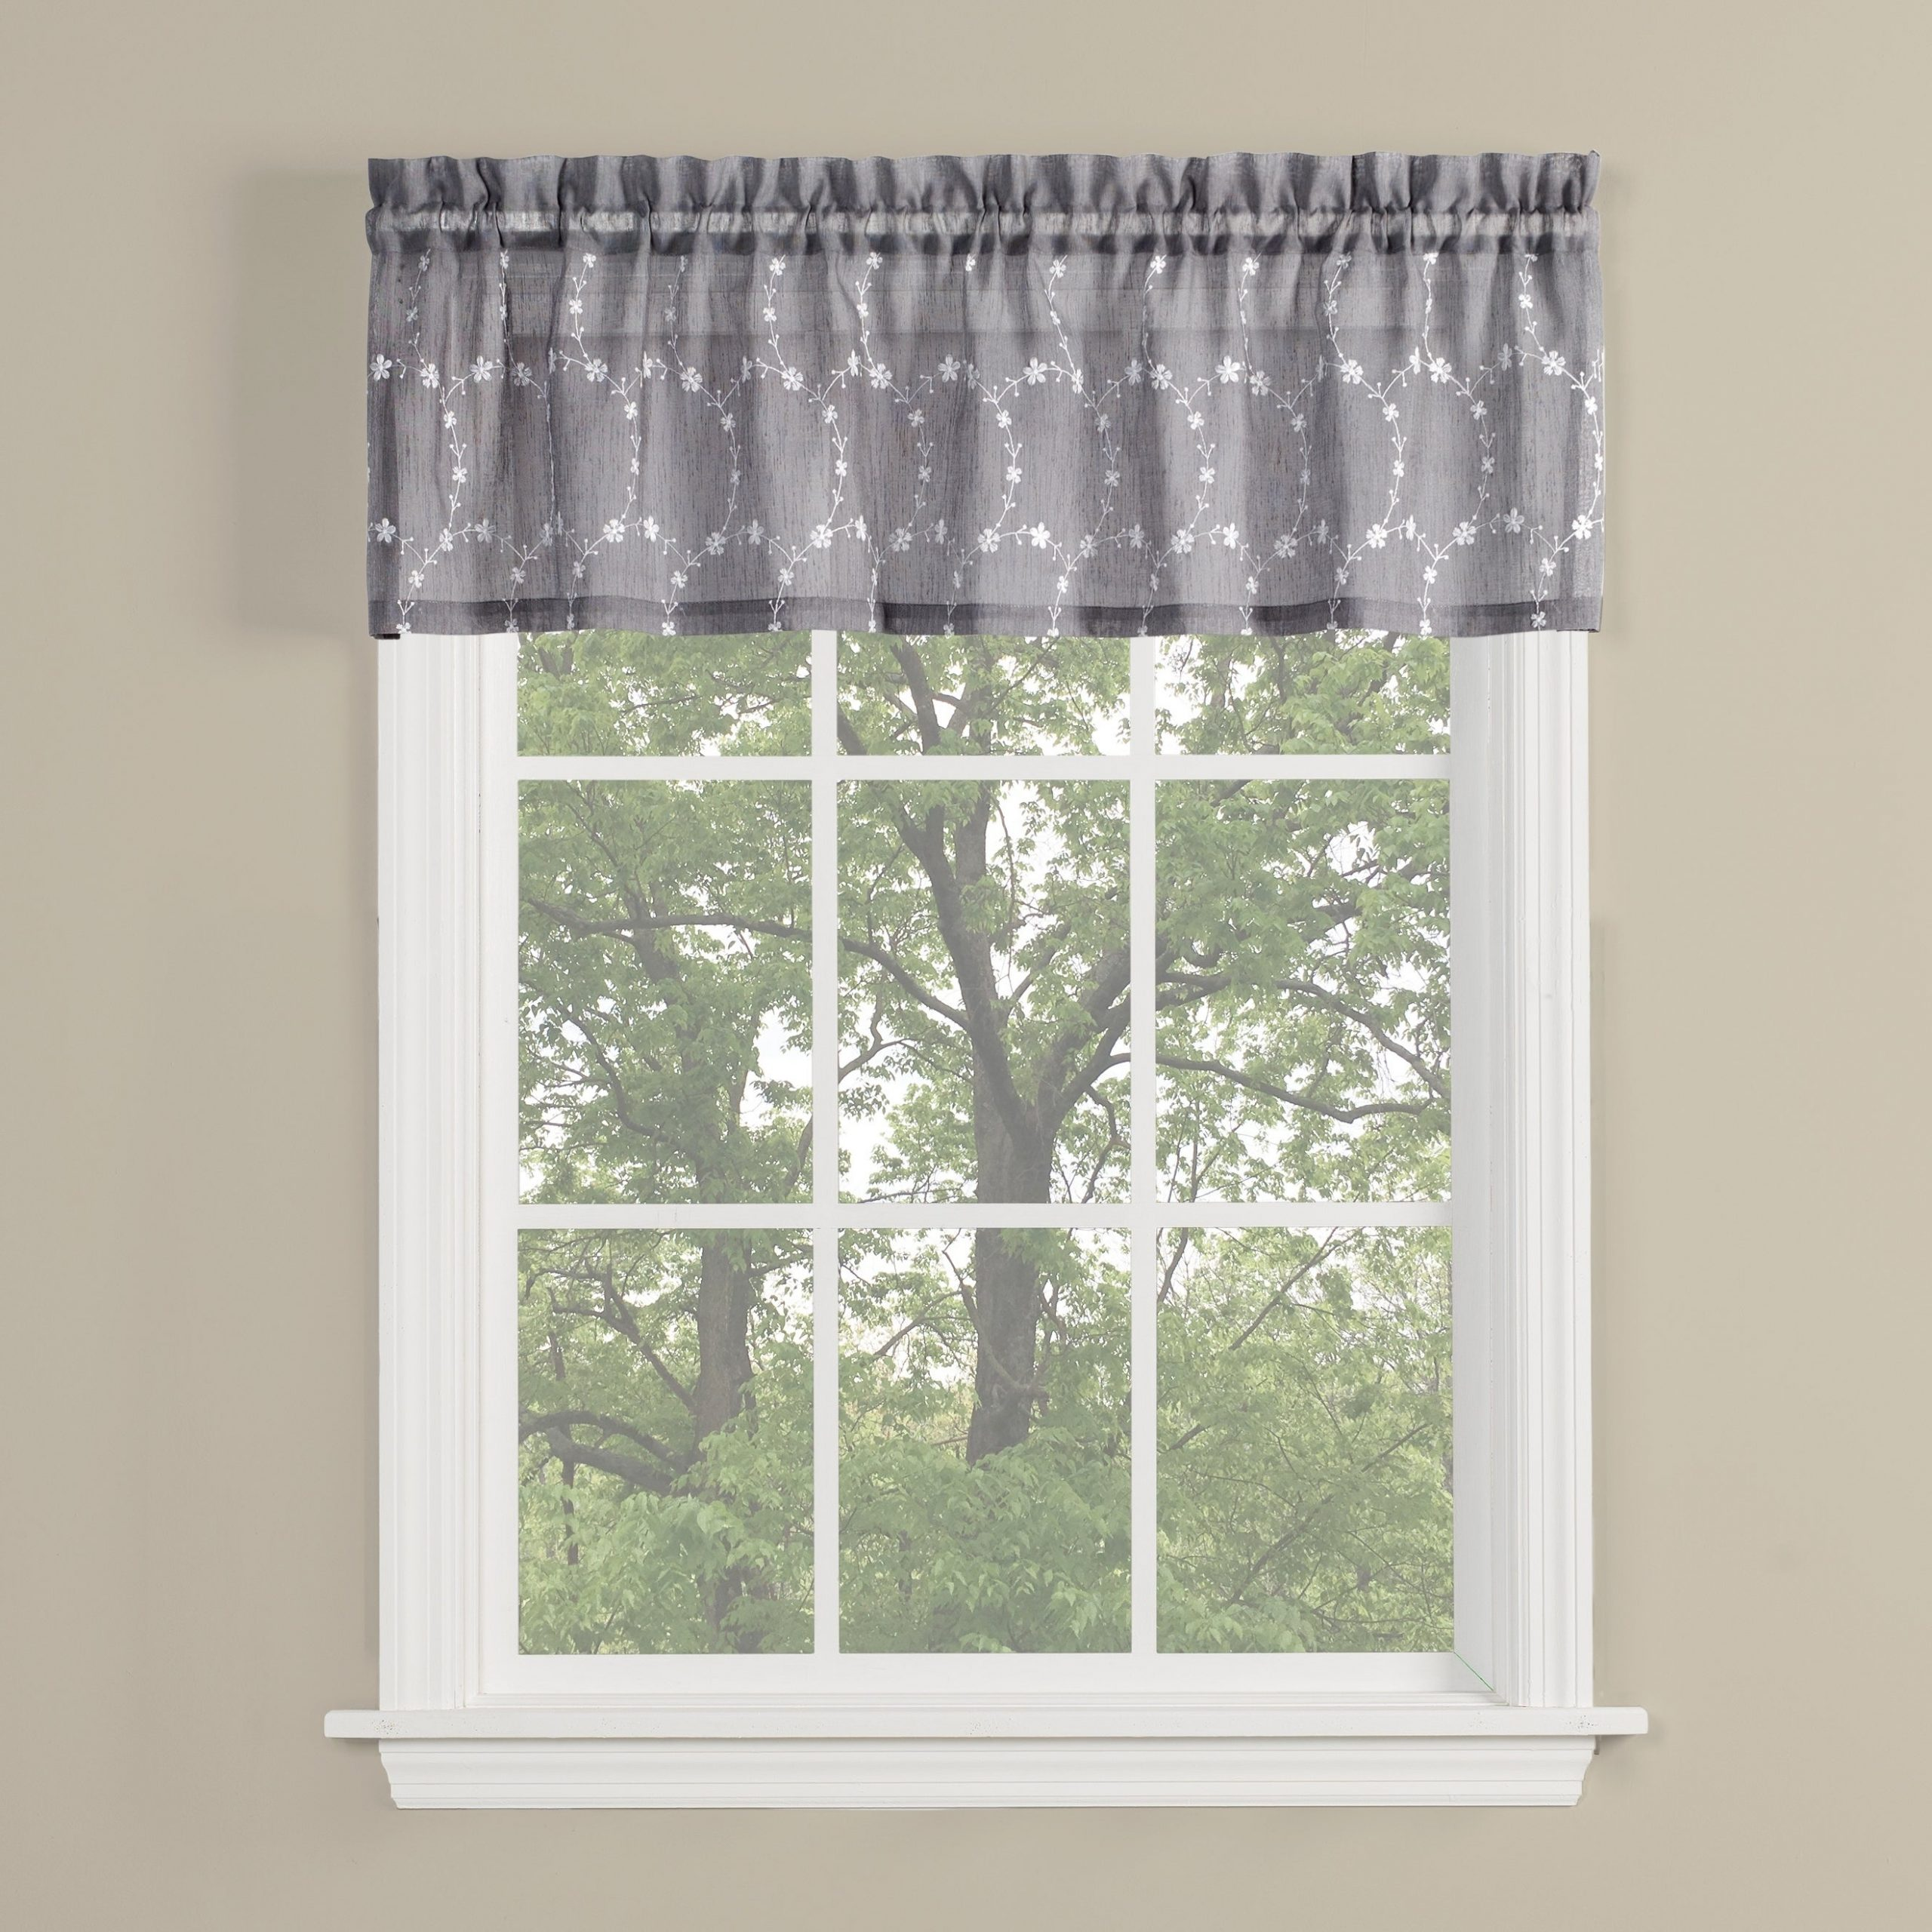 Flinders Forge 30 Inch Tiers In Dove Grey Throughout 2021 Skl Home Briarwood 13 Inch Valance In Dove Gray (View 8 of 20)